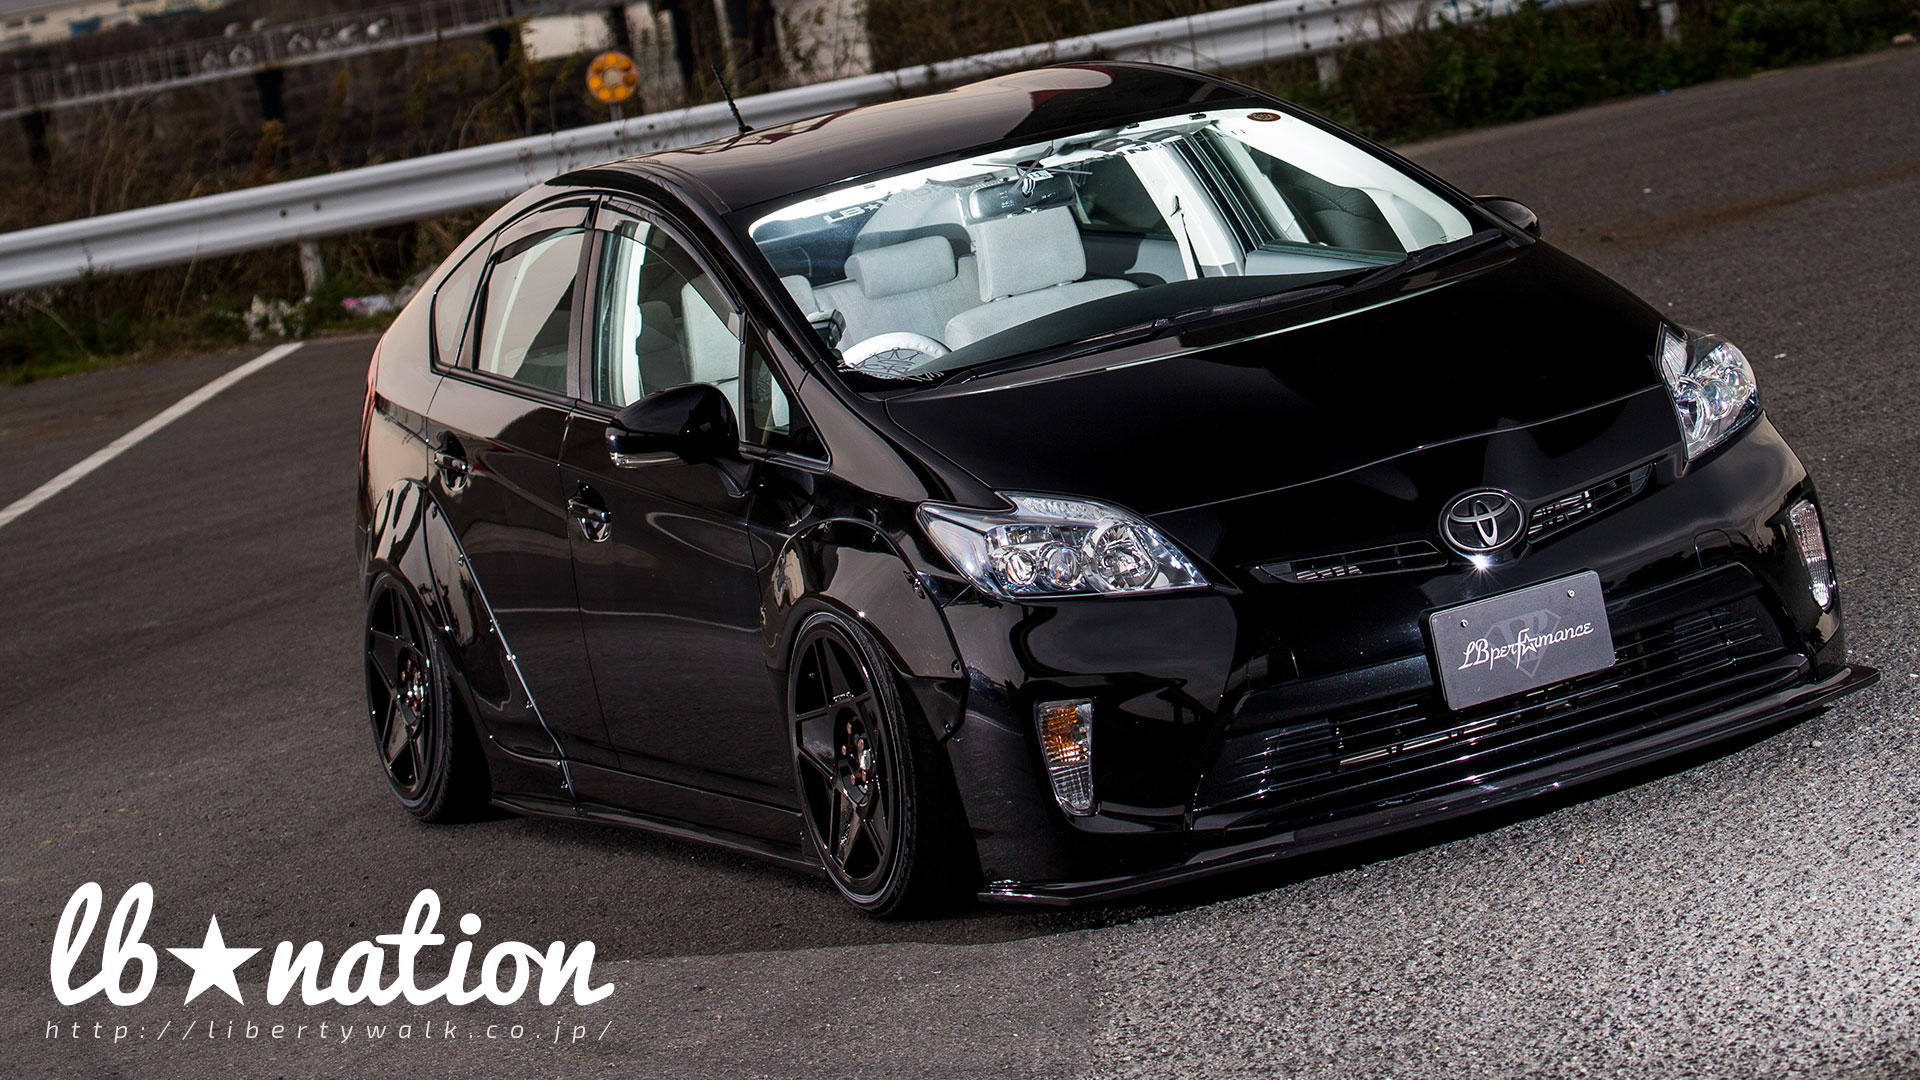 lbnation_304_1920_1080 lb★nation WORKS PRIUS 30